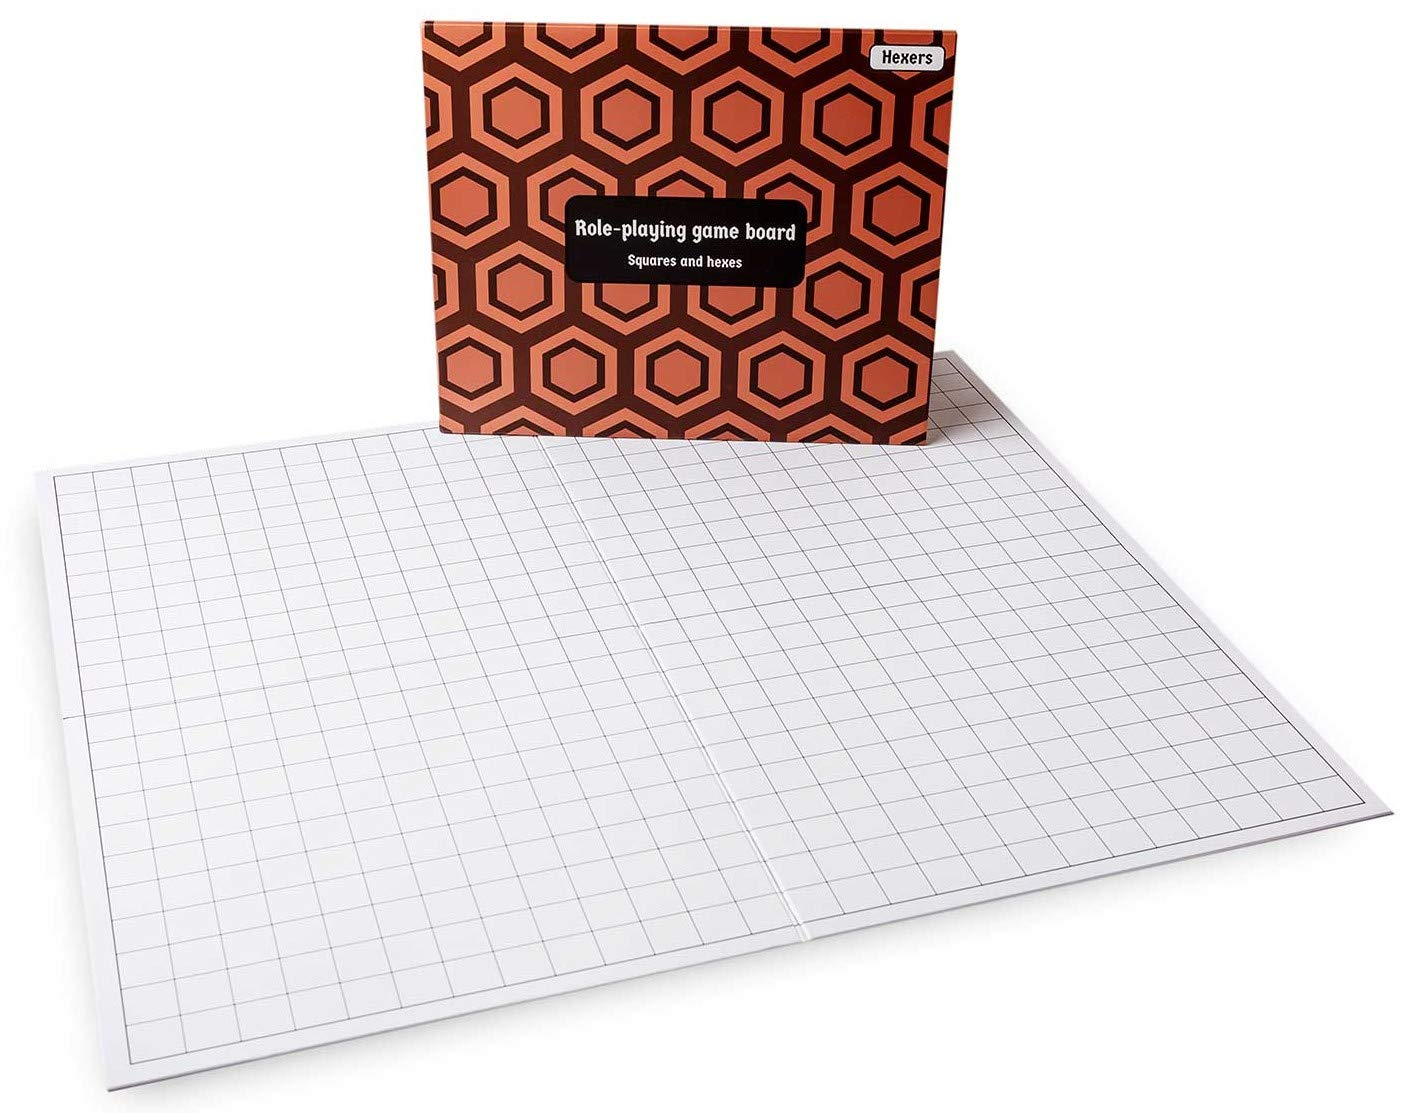 Hexers Role-Playing Game Board lite Vinyl Mat Alternative Dungeons and Dragons DND Pathfinder RPG Compatible, 27 on 23 inches, 1 inch Squares on one Side, Hexes on Other Side, Foldable and Dry Erase by Hexers